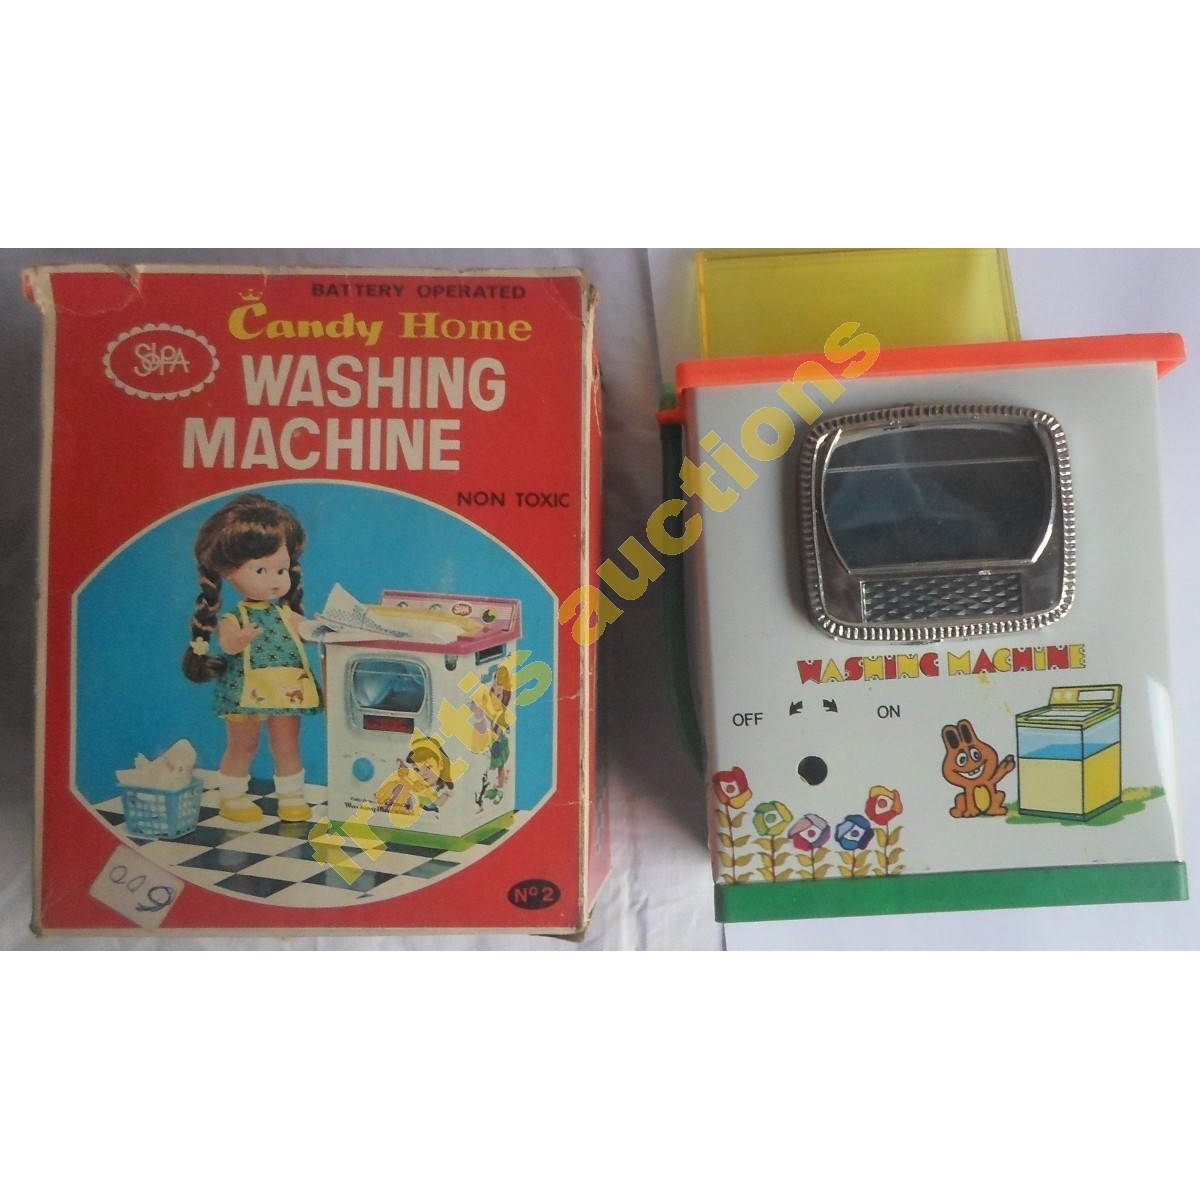 VINTAGE 60s TIN CANDY HOME WASHING MACHINE TOY SOLPA